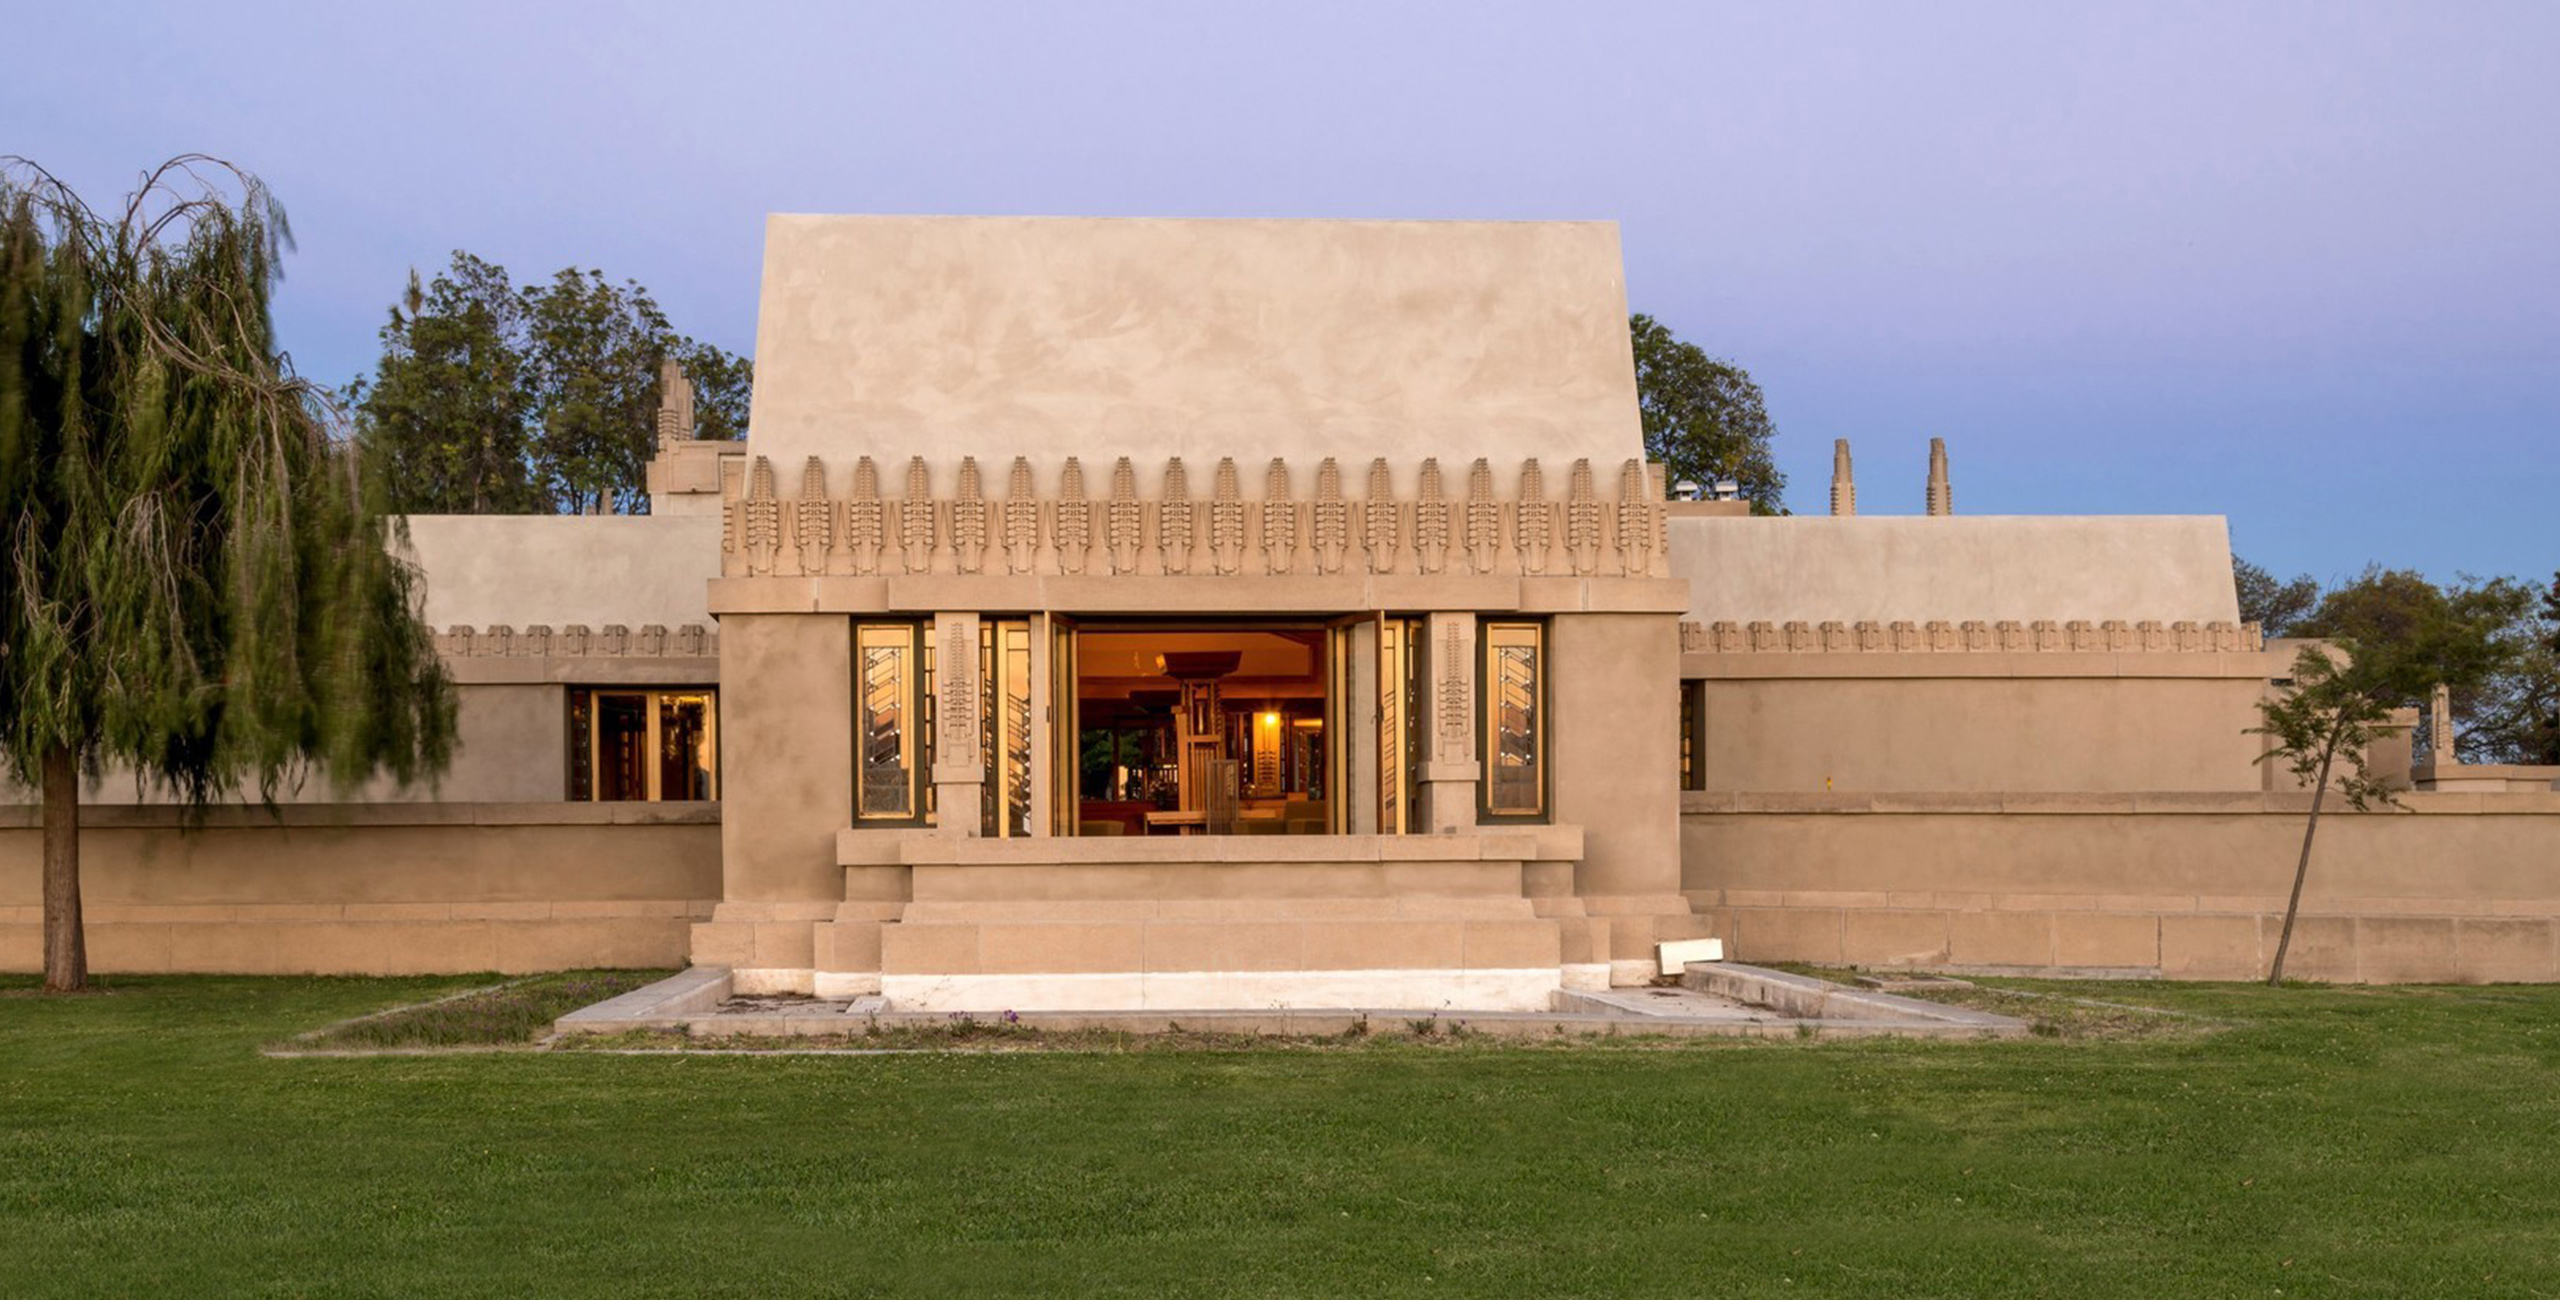 Frank Lloyd Wright's Hollyhock House, completed in 1921